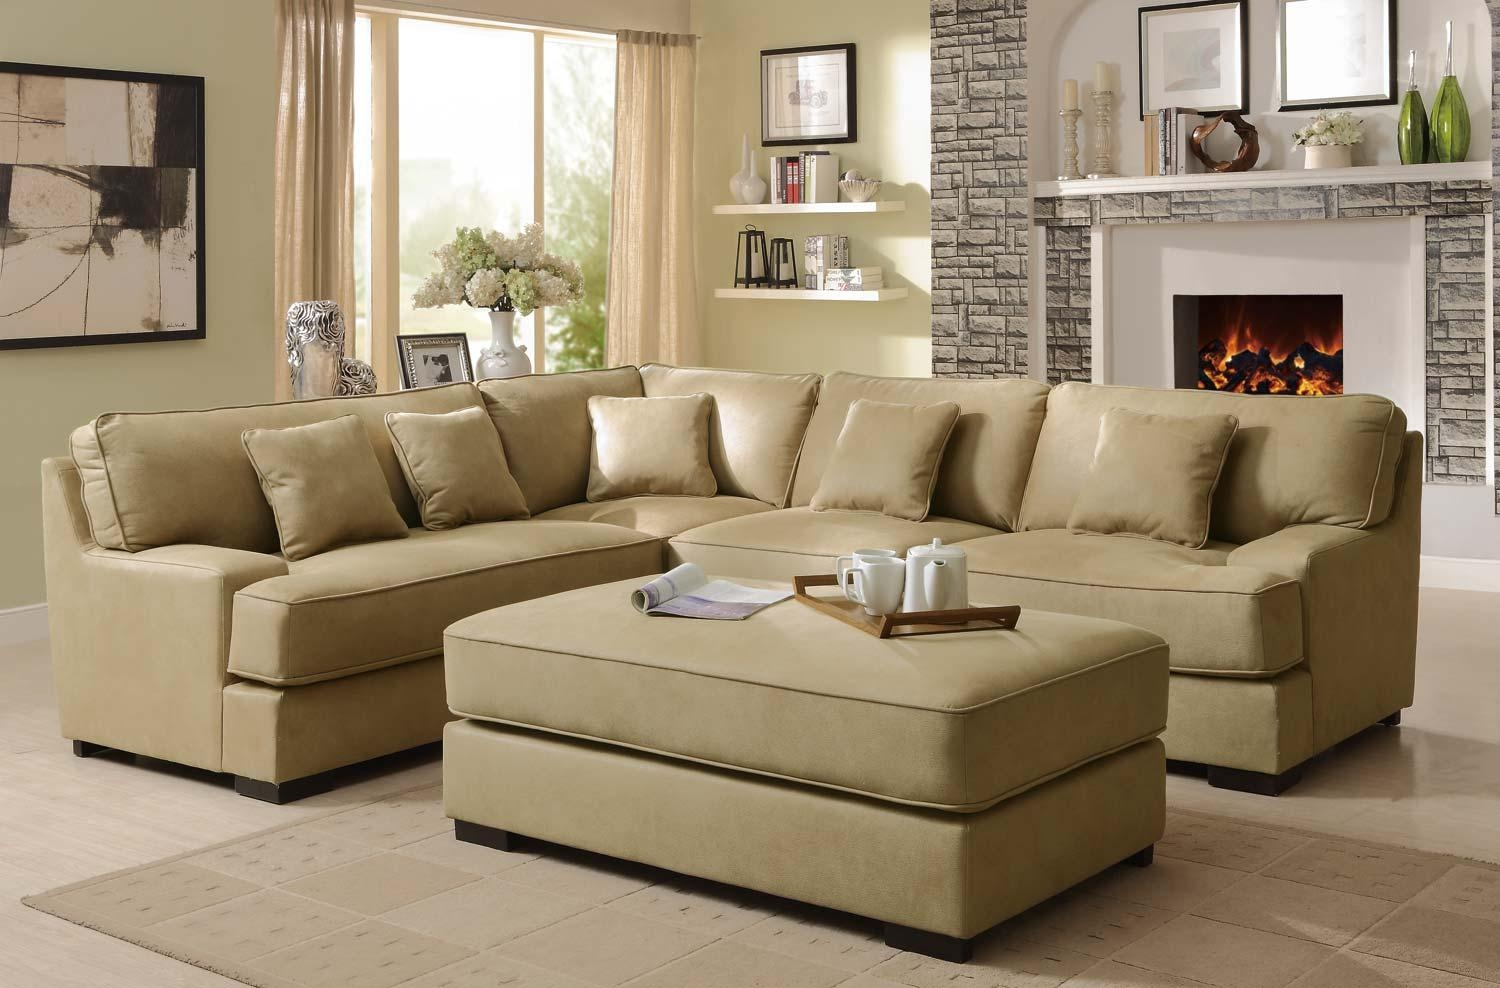 Sofas Center : Breathtaking Beige Sofa Set Picture Inspirations In Beige Sofas (View 19 of 20)